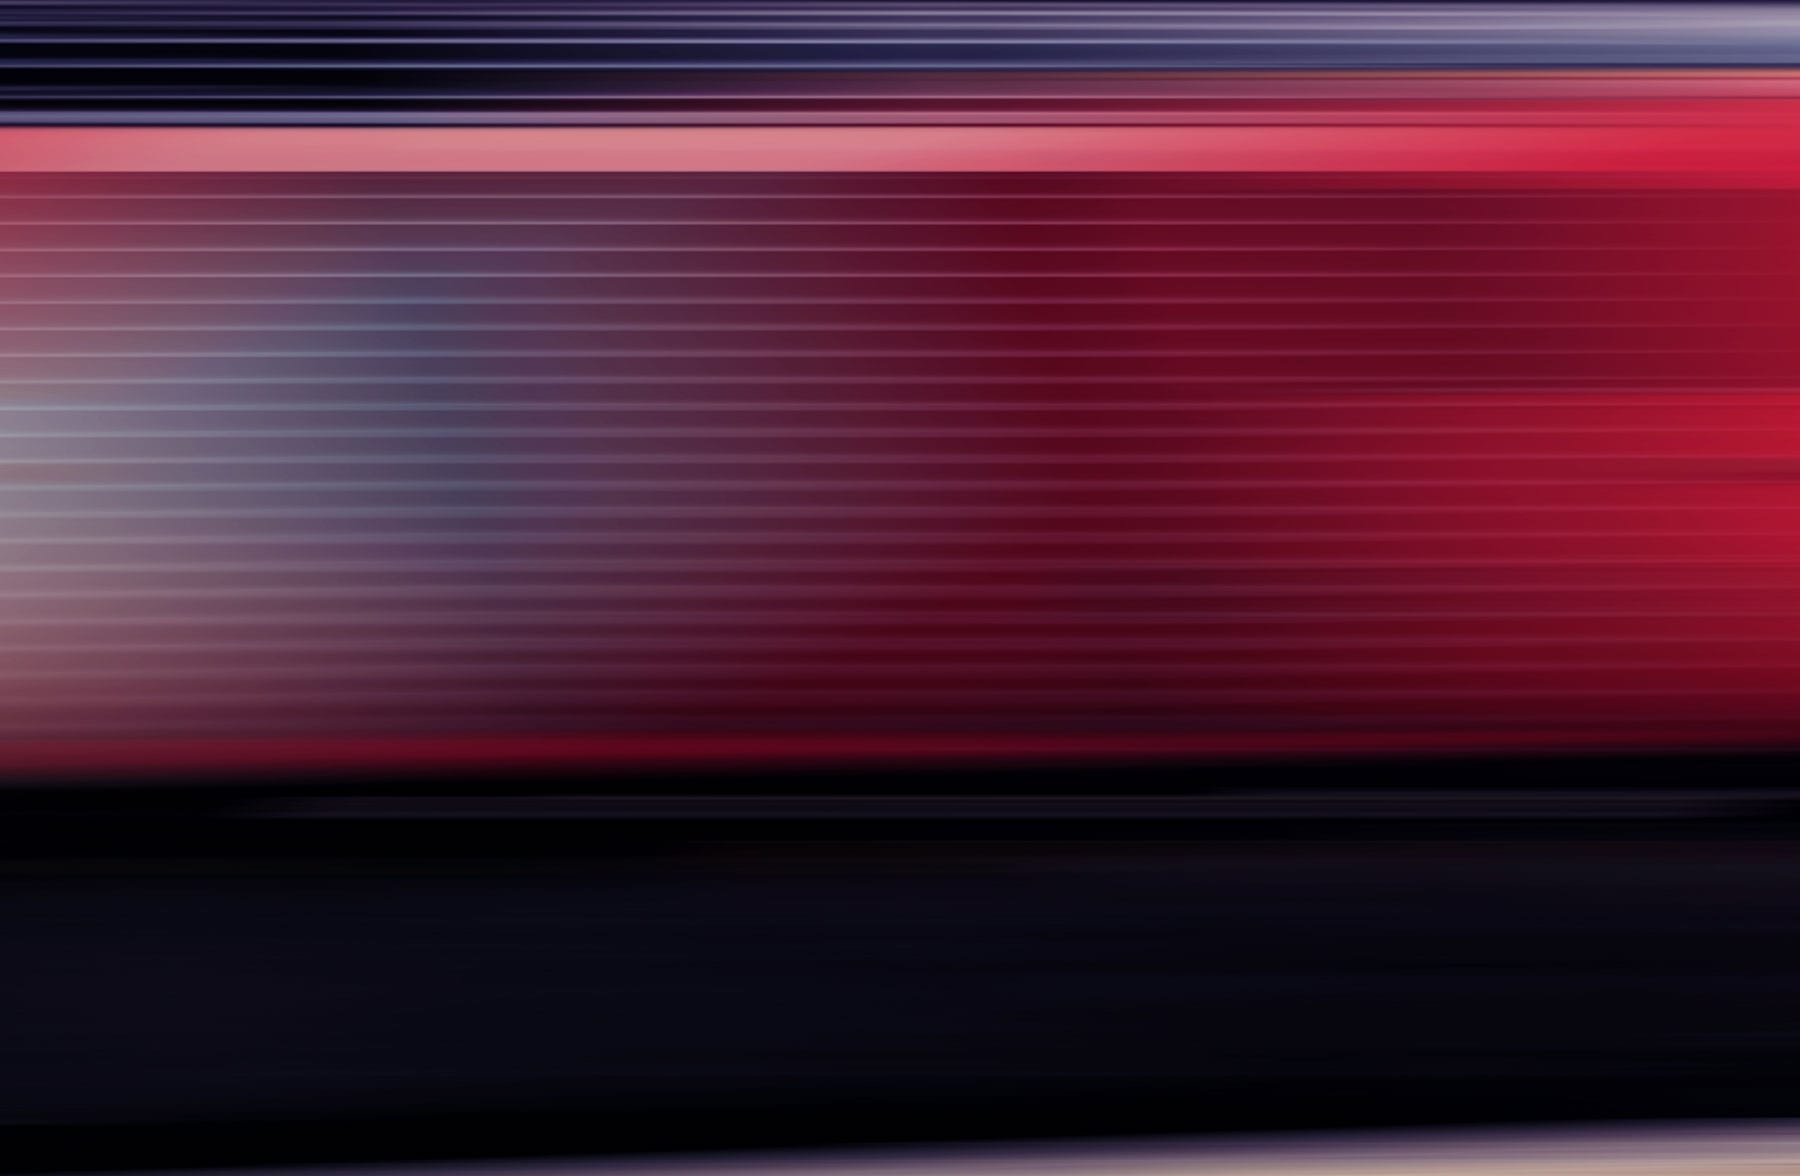 Background image for hero, black and red motion blur.